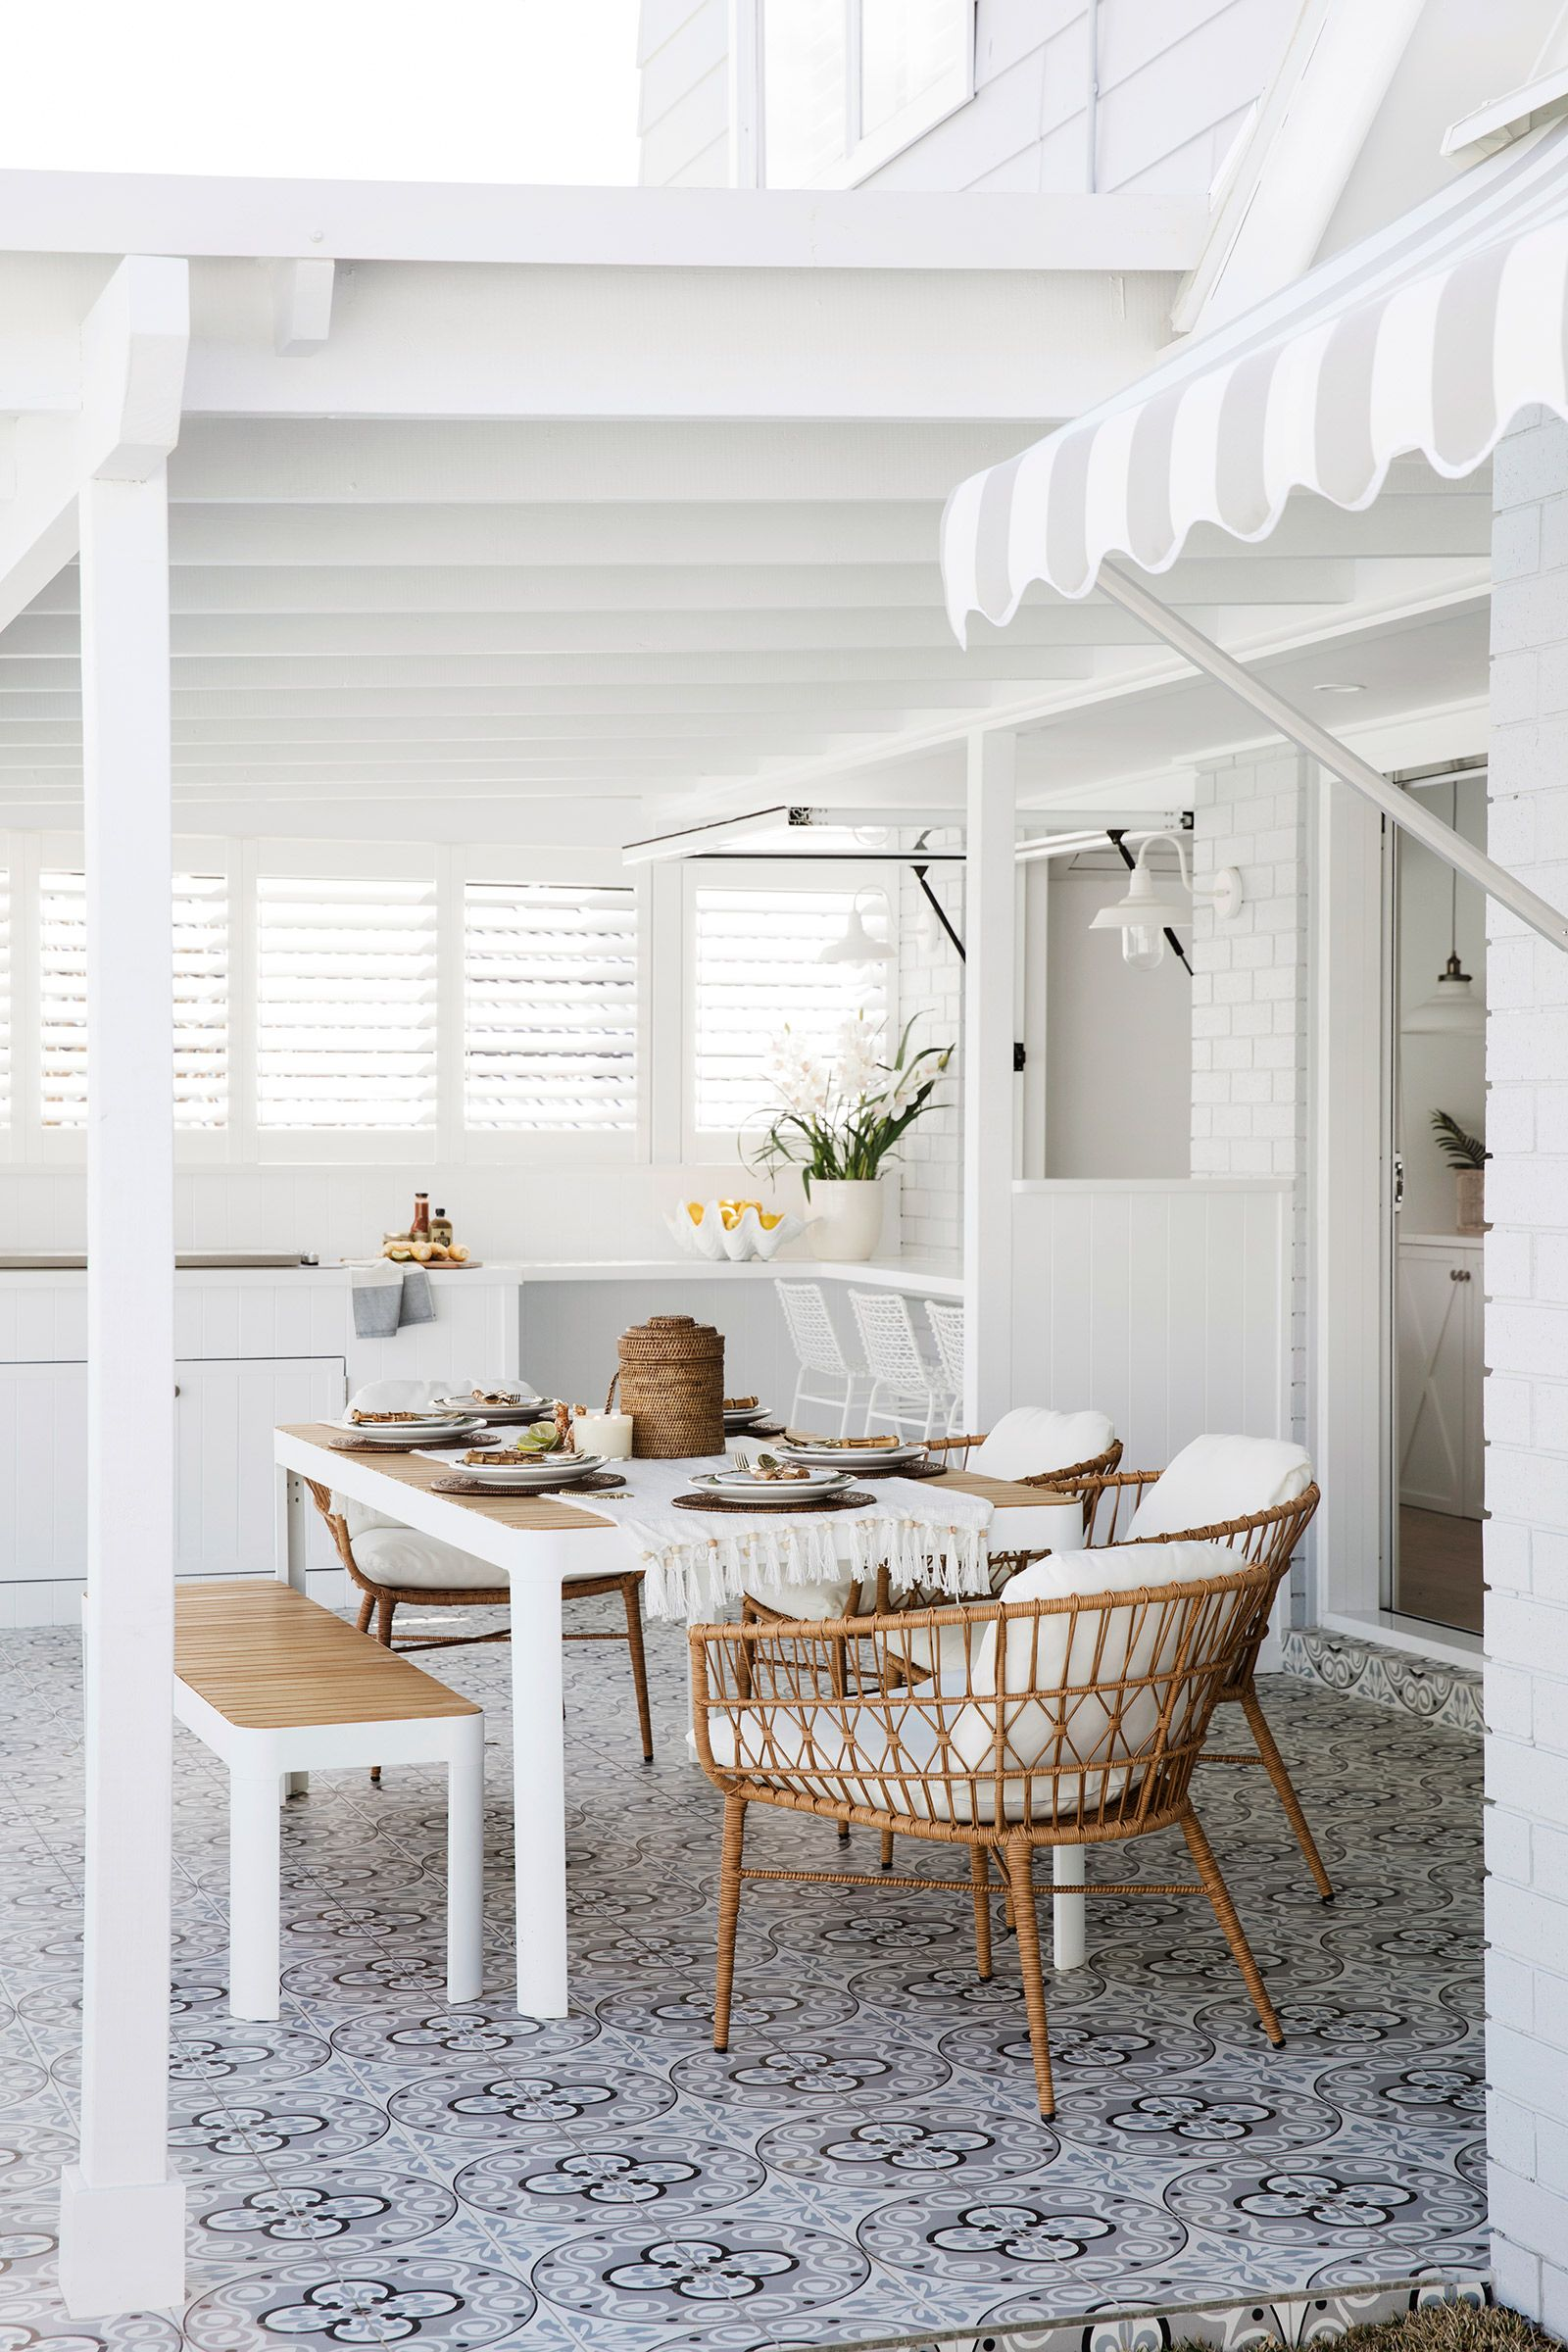 dining set, wooden table, wooden bench, rattan chairs, patterned floor, white wall